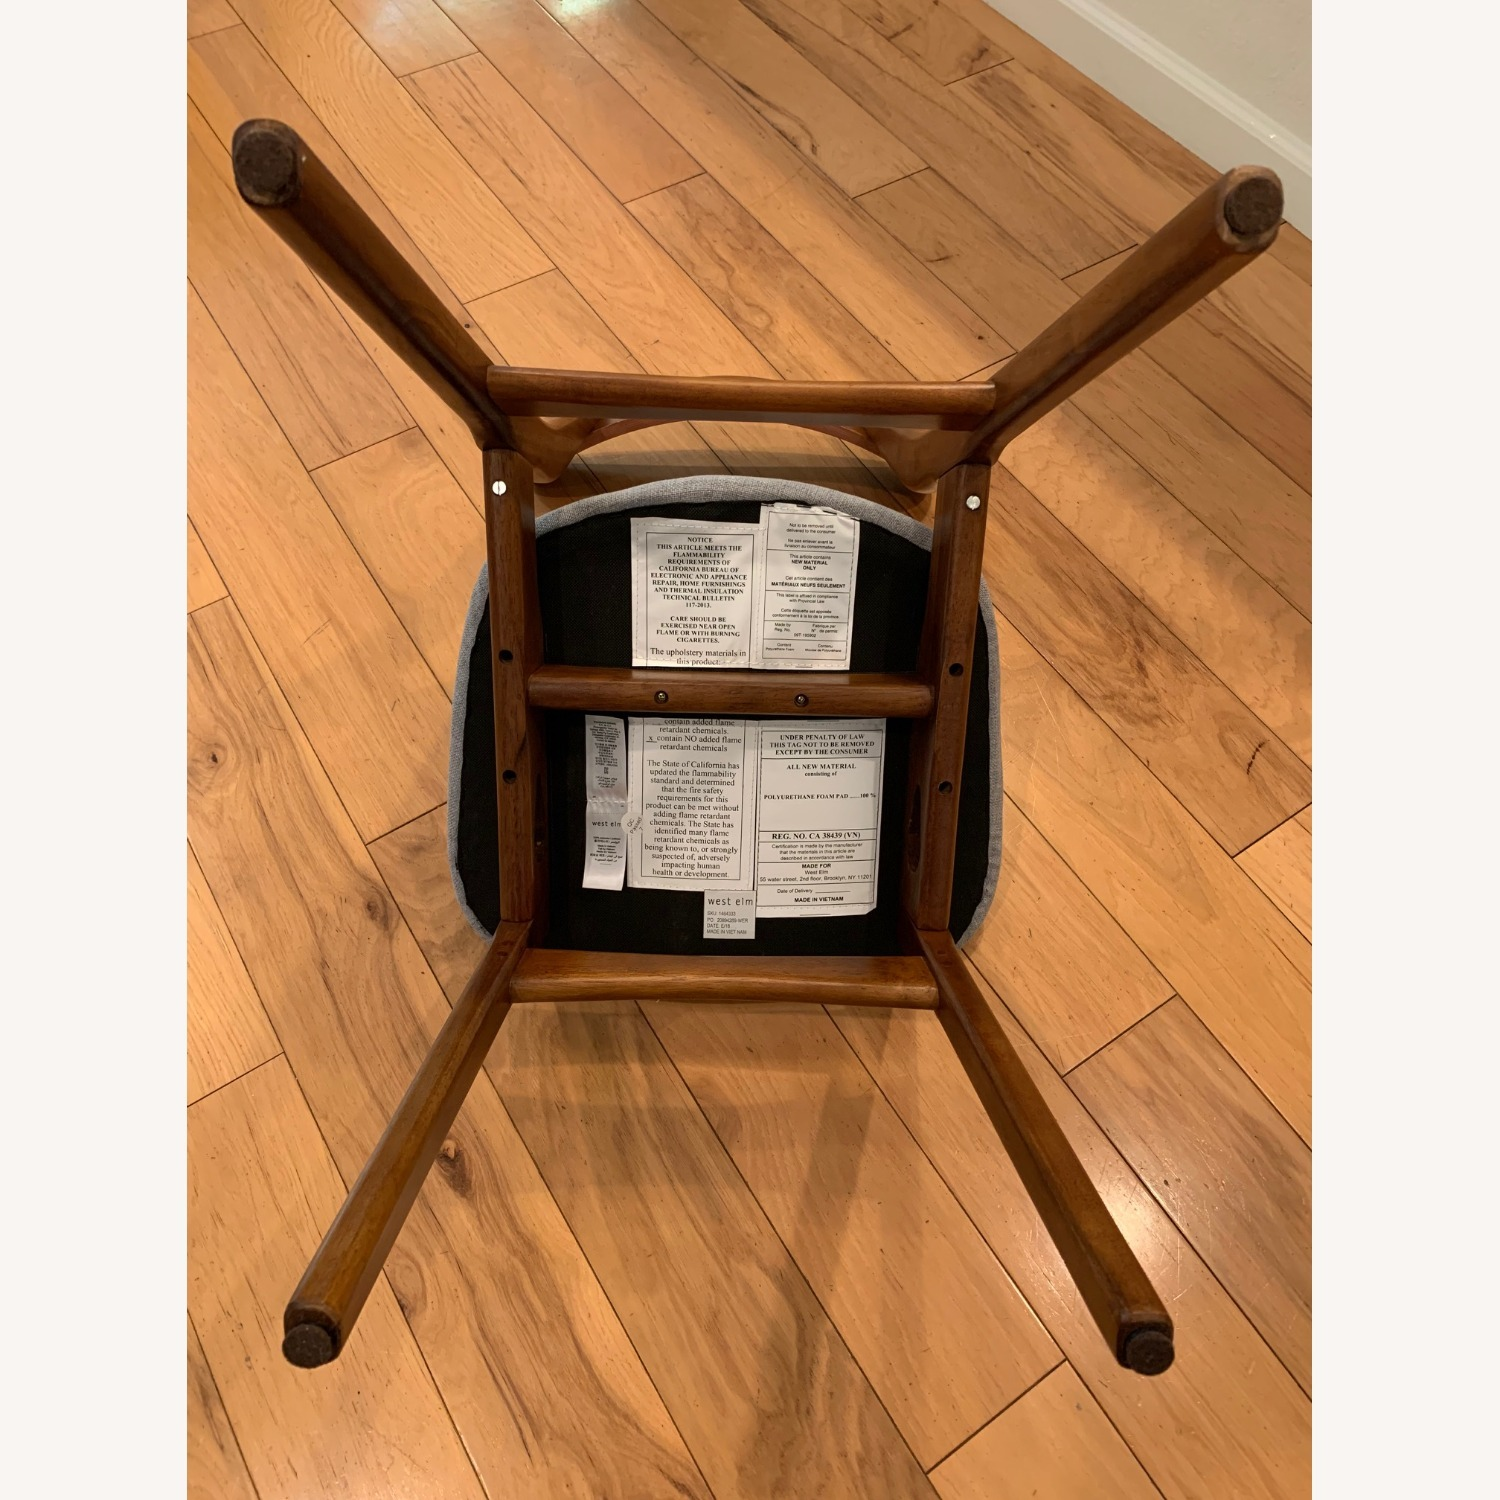 West Elm Classic Cafe Dining Chair(s) - image-6